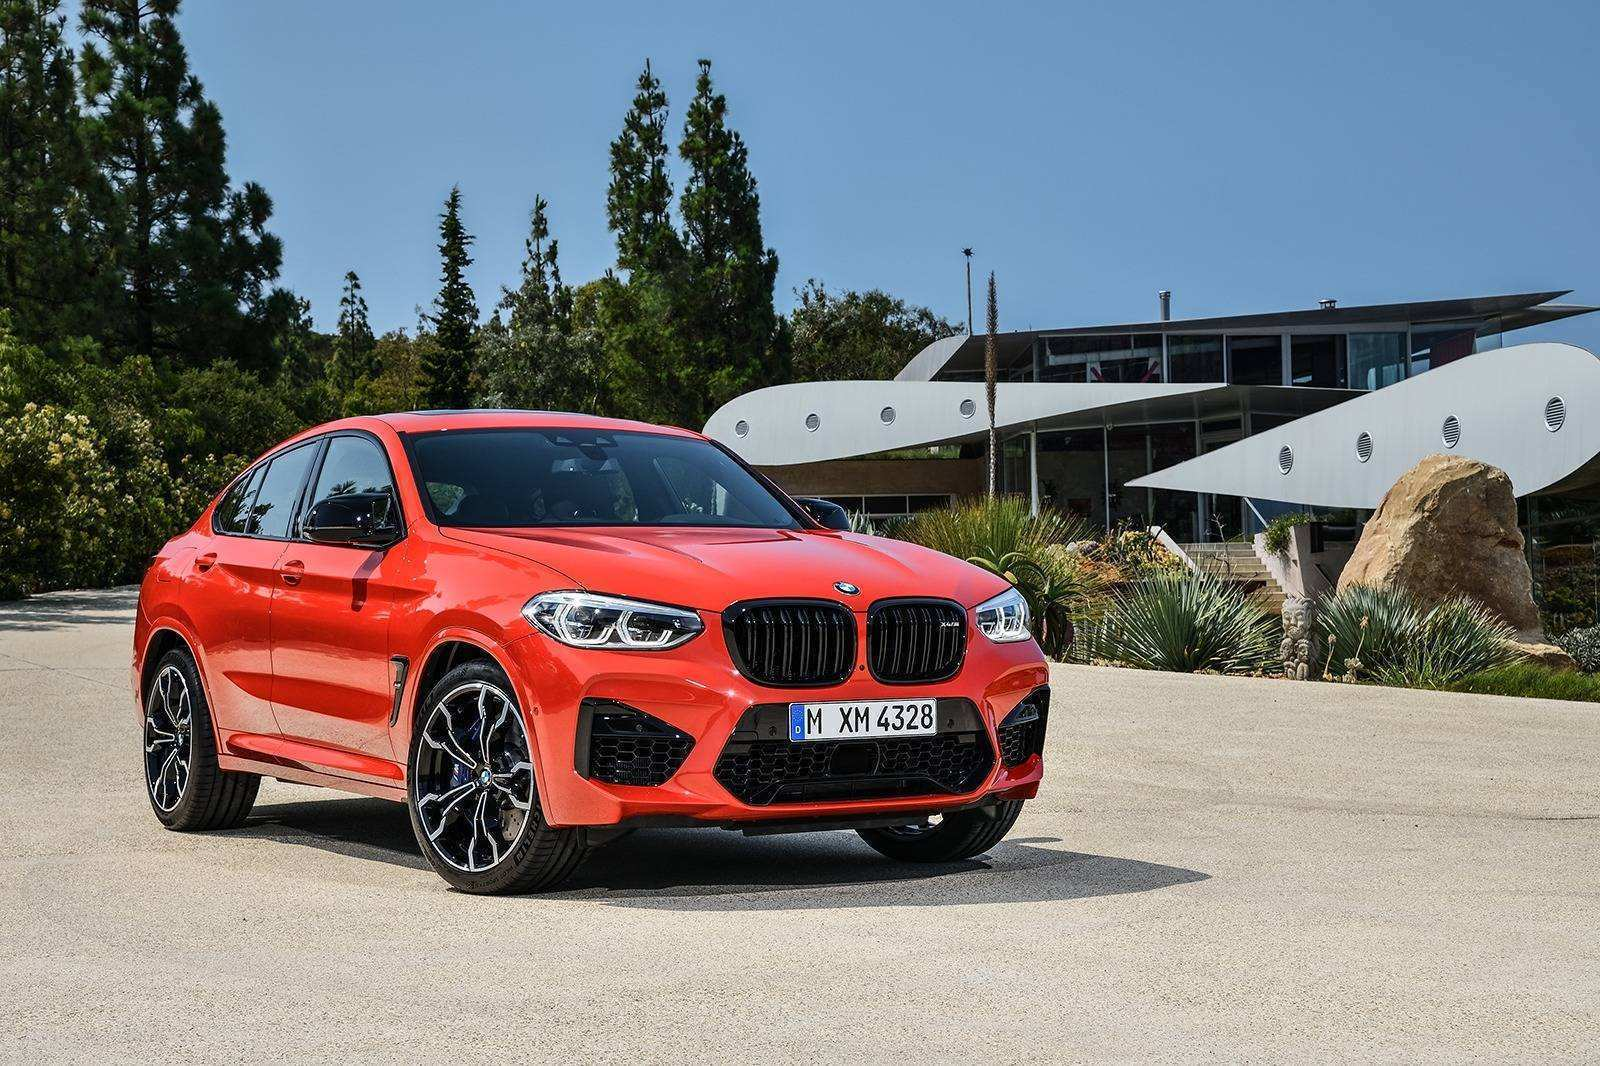 89 Best Review 2020 BMW X4 Images with 2020 BMW X4